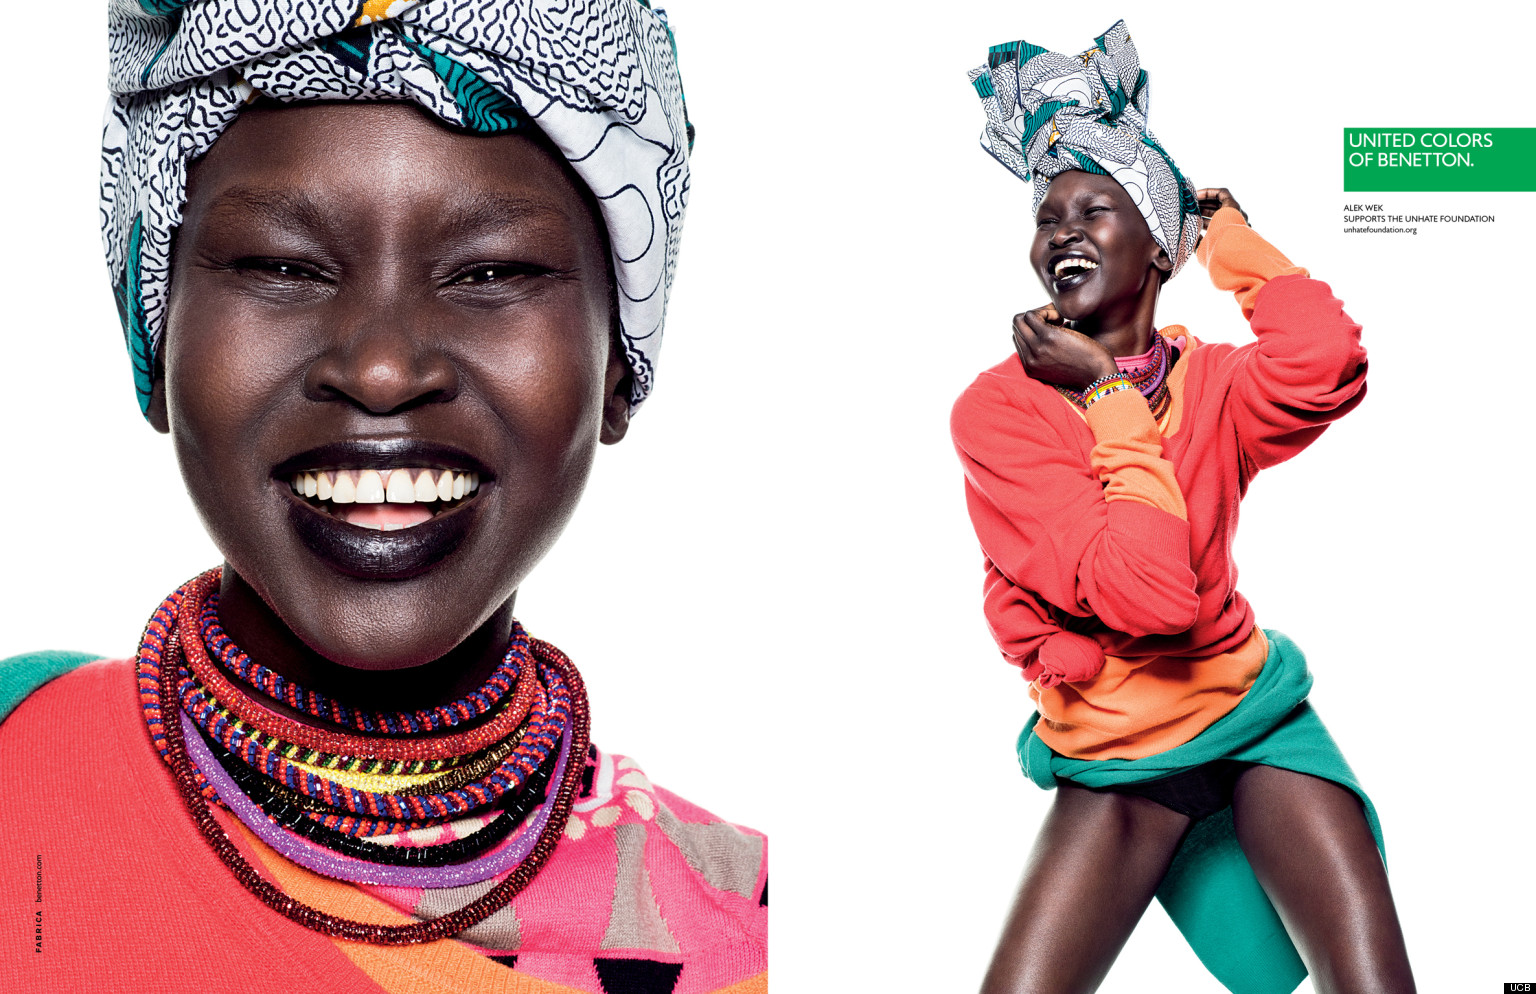 Konbini-alek-wek-united-colors-of-benetton.jpeg